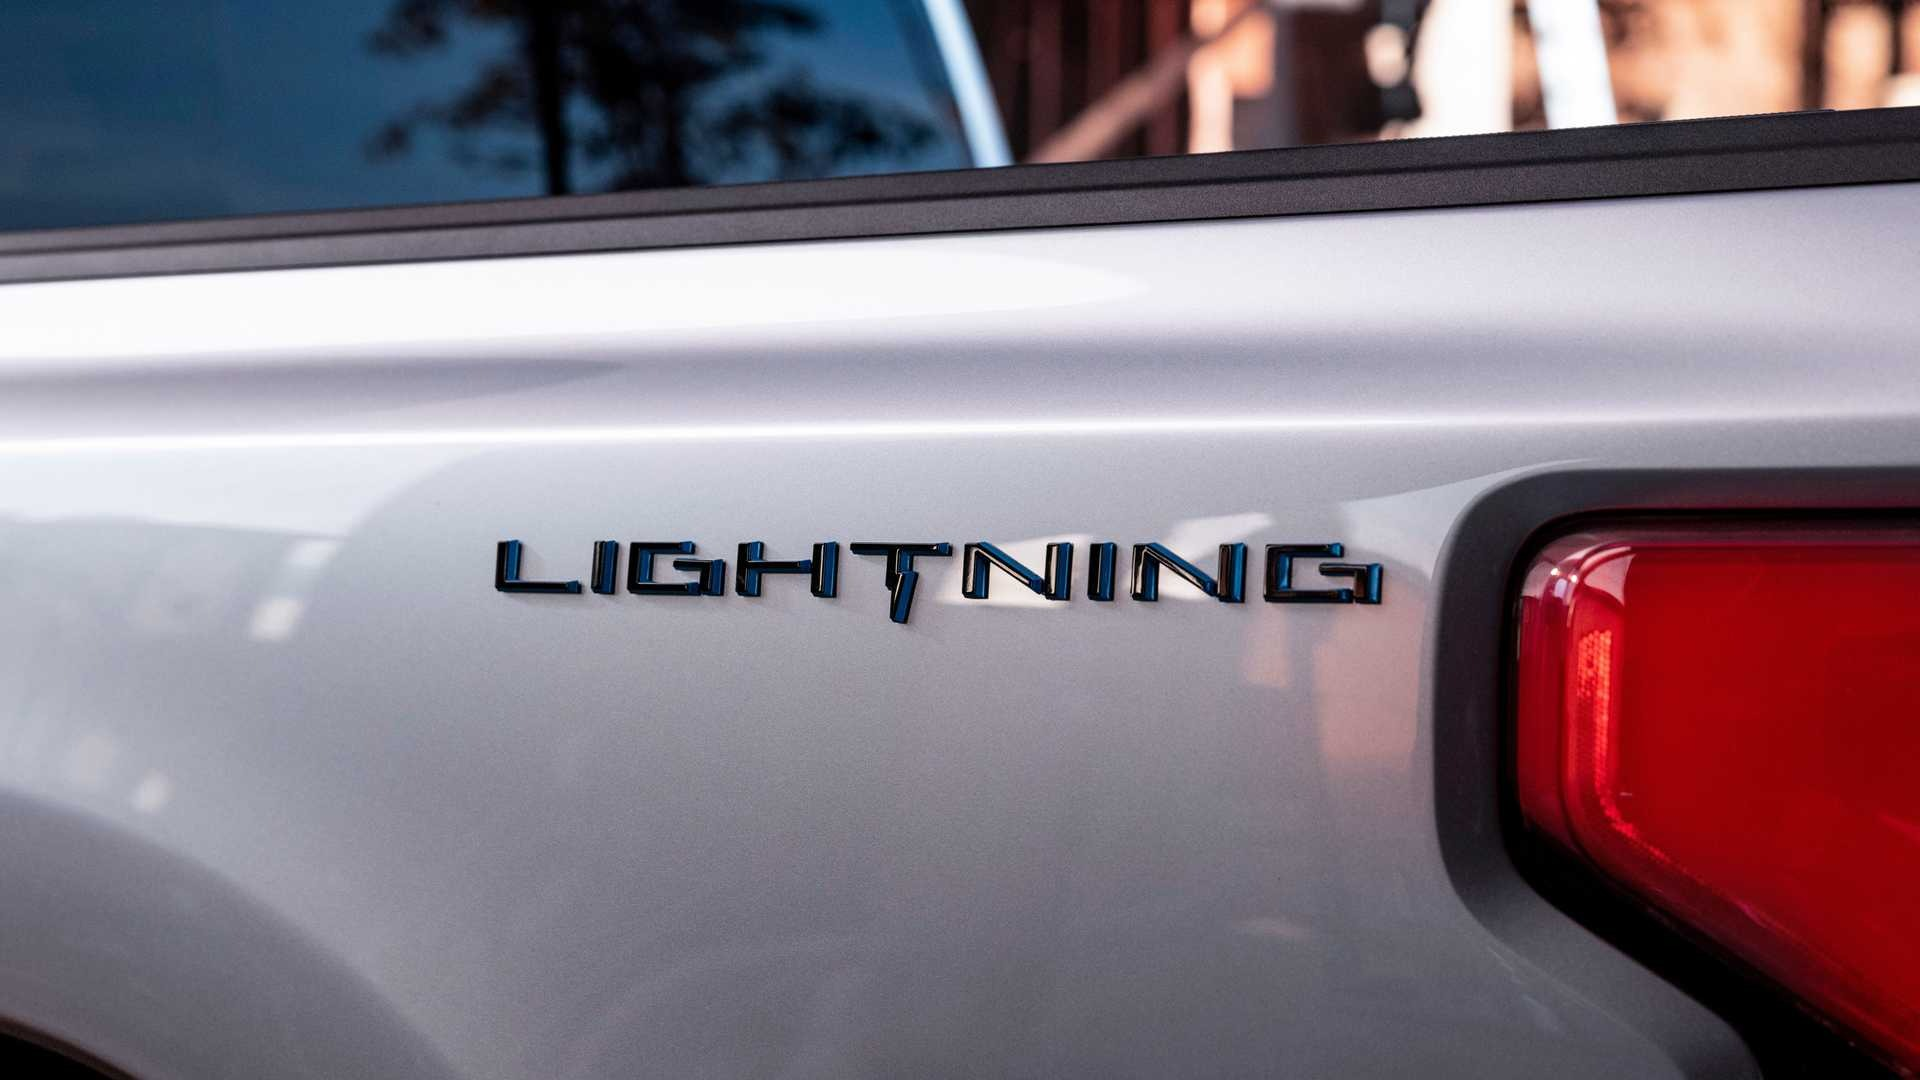 Ford has confirmed that is collected over 100,000 pre-orders for the all-electric Ford F-150 Lightning truck within just three weeks from the announcement, calling it 'a great success'.